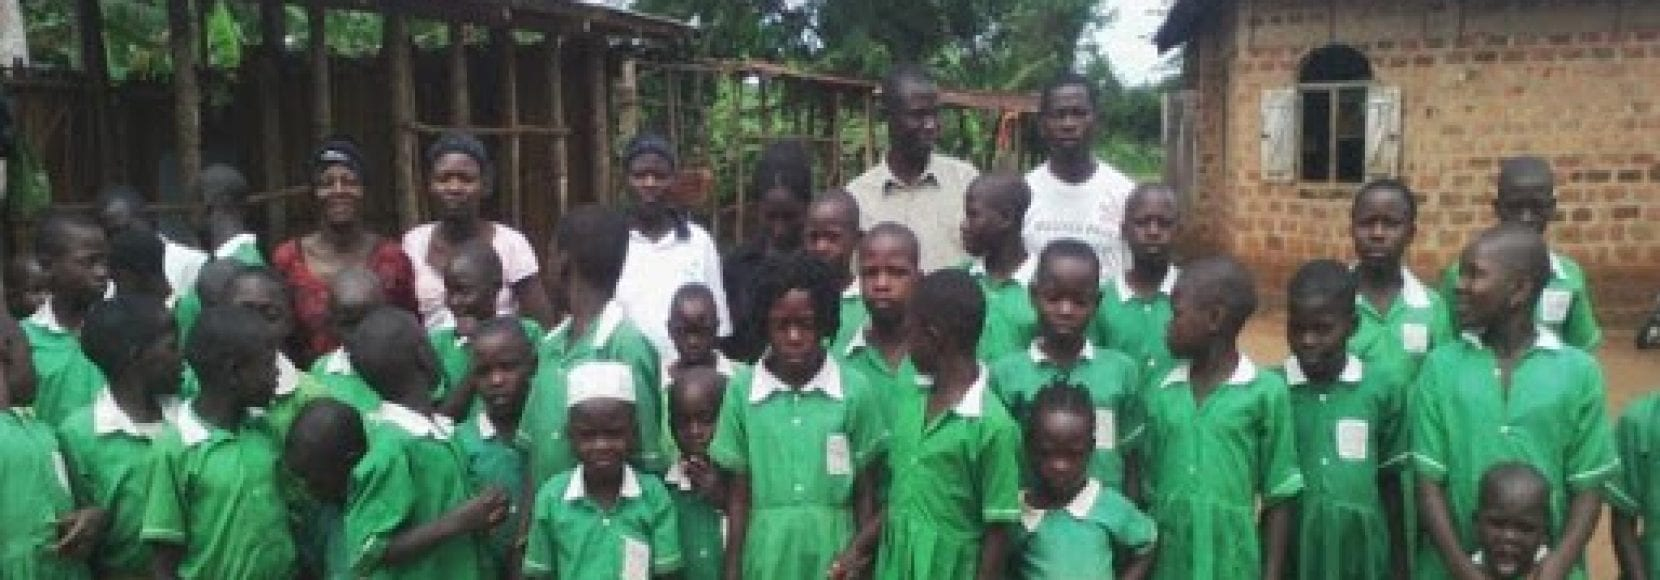 Group of kids and teachers in Uganda